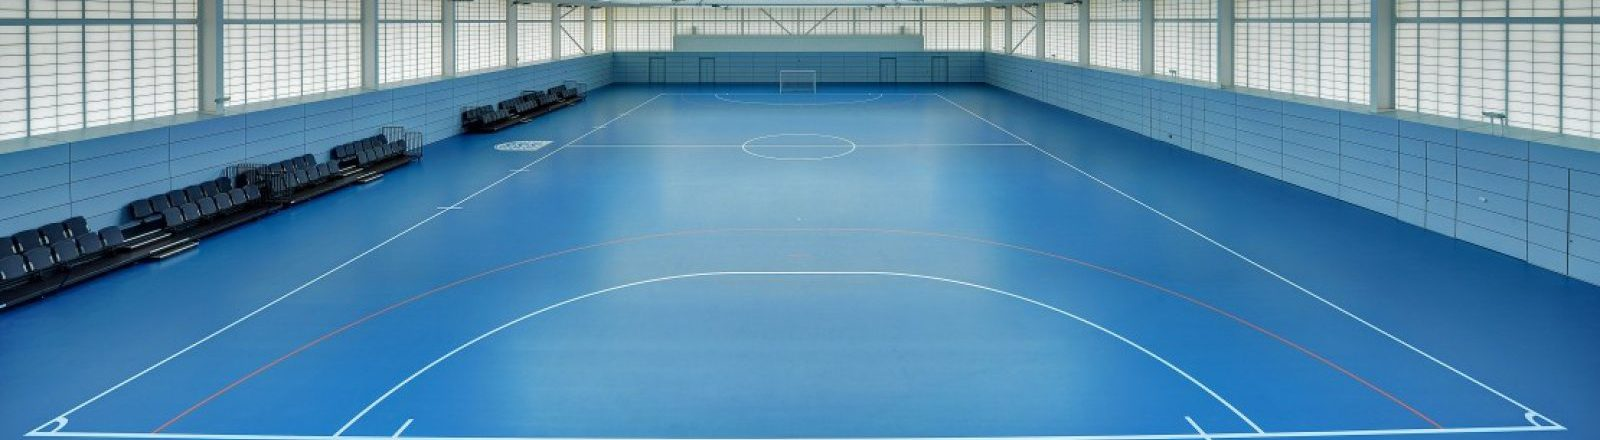 gym hall with sports flooring